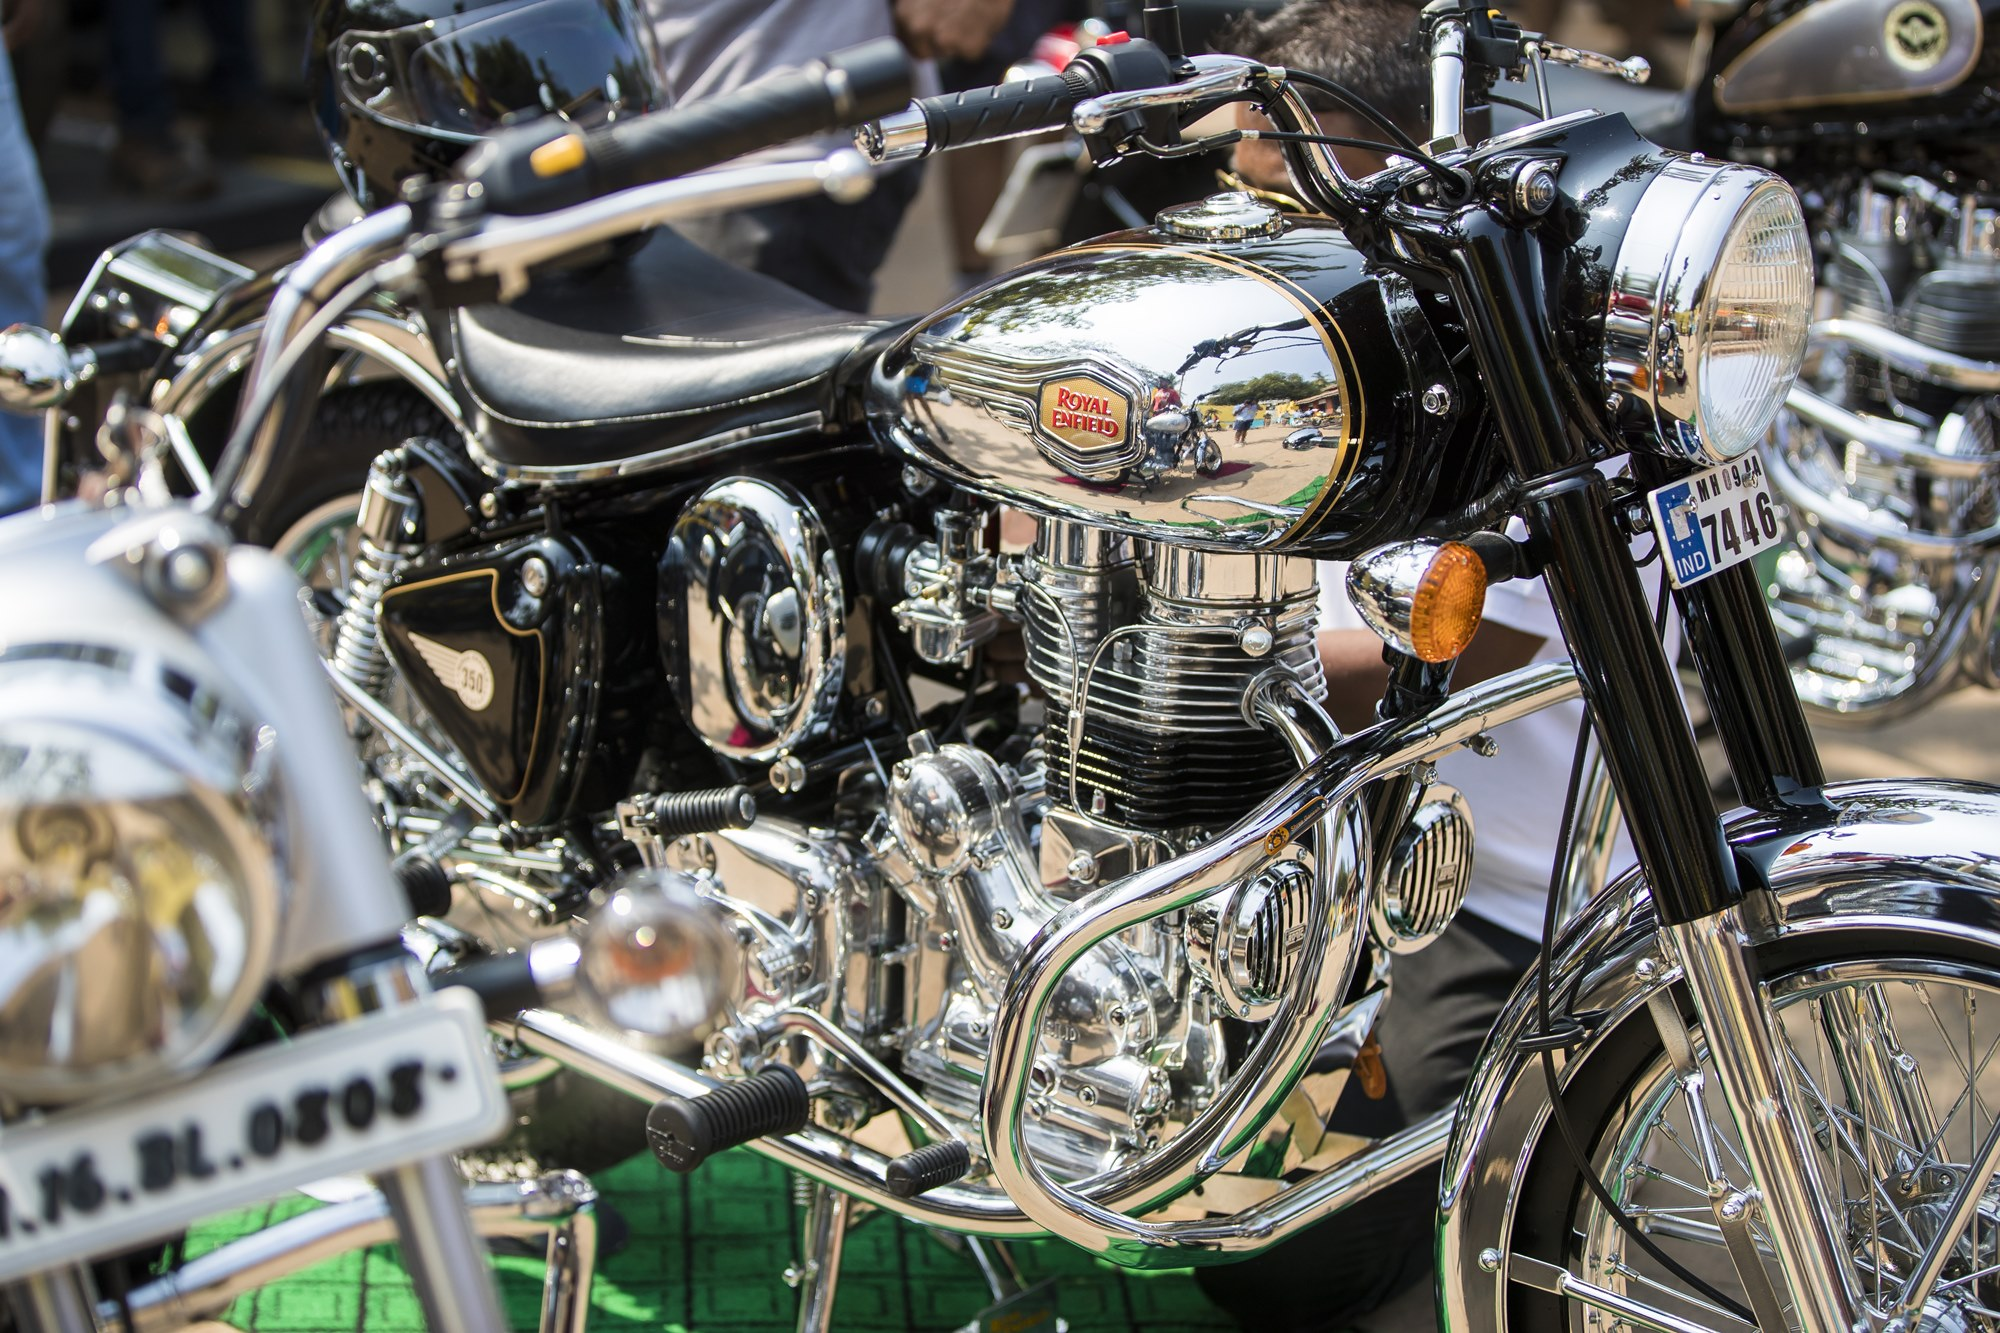 2017 Royal Enfield Rider Mania photos